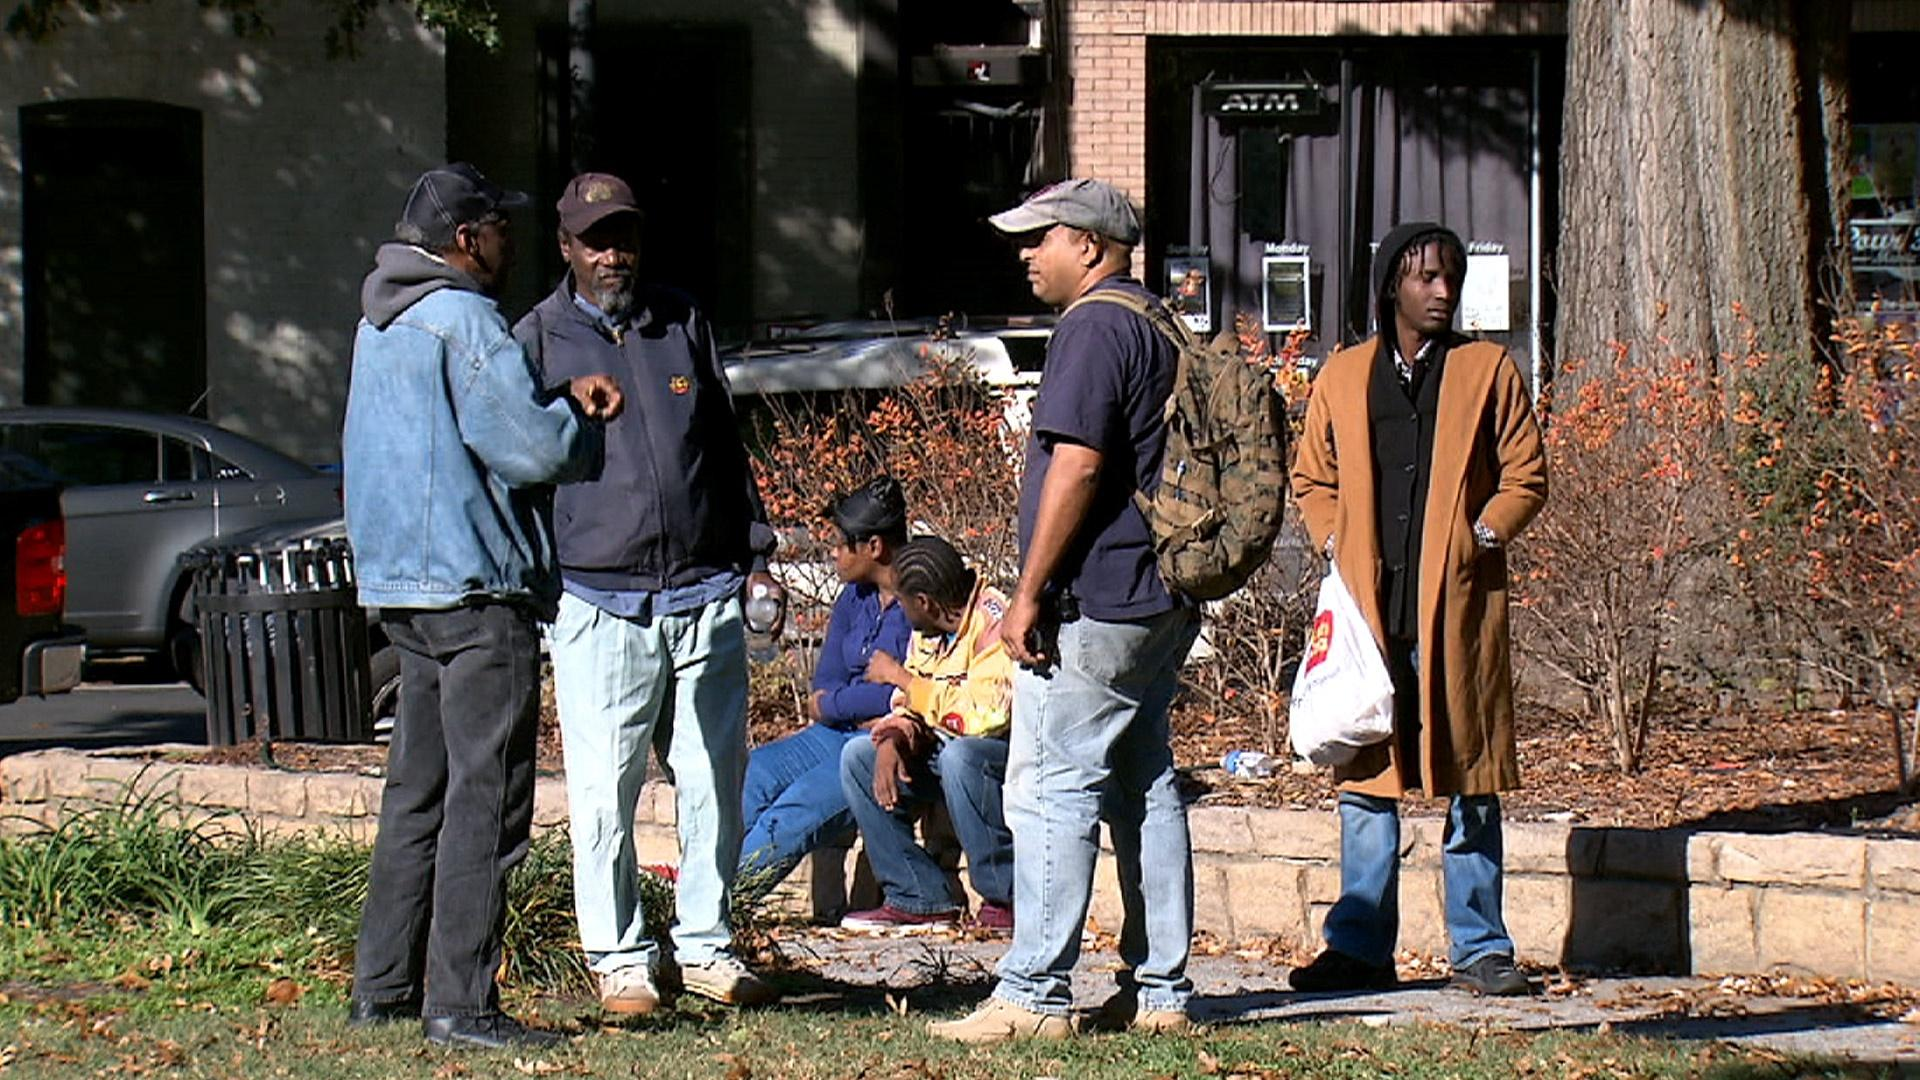 Relocating the Homeless image